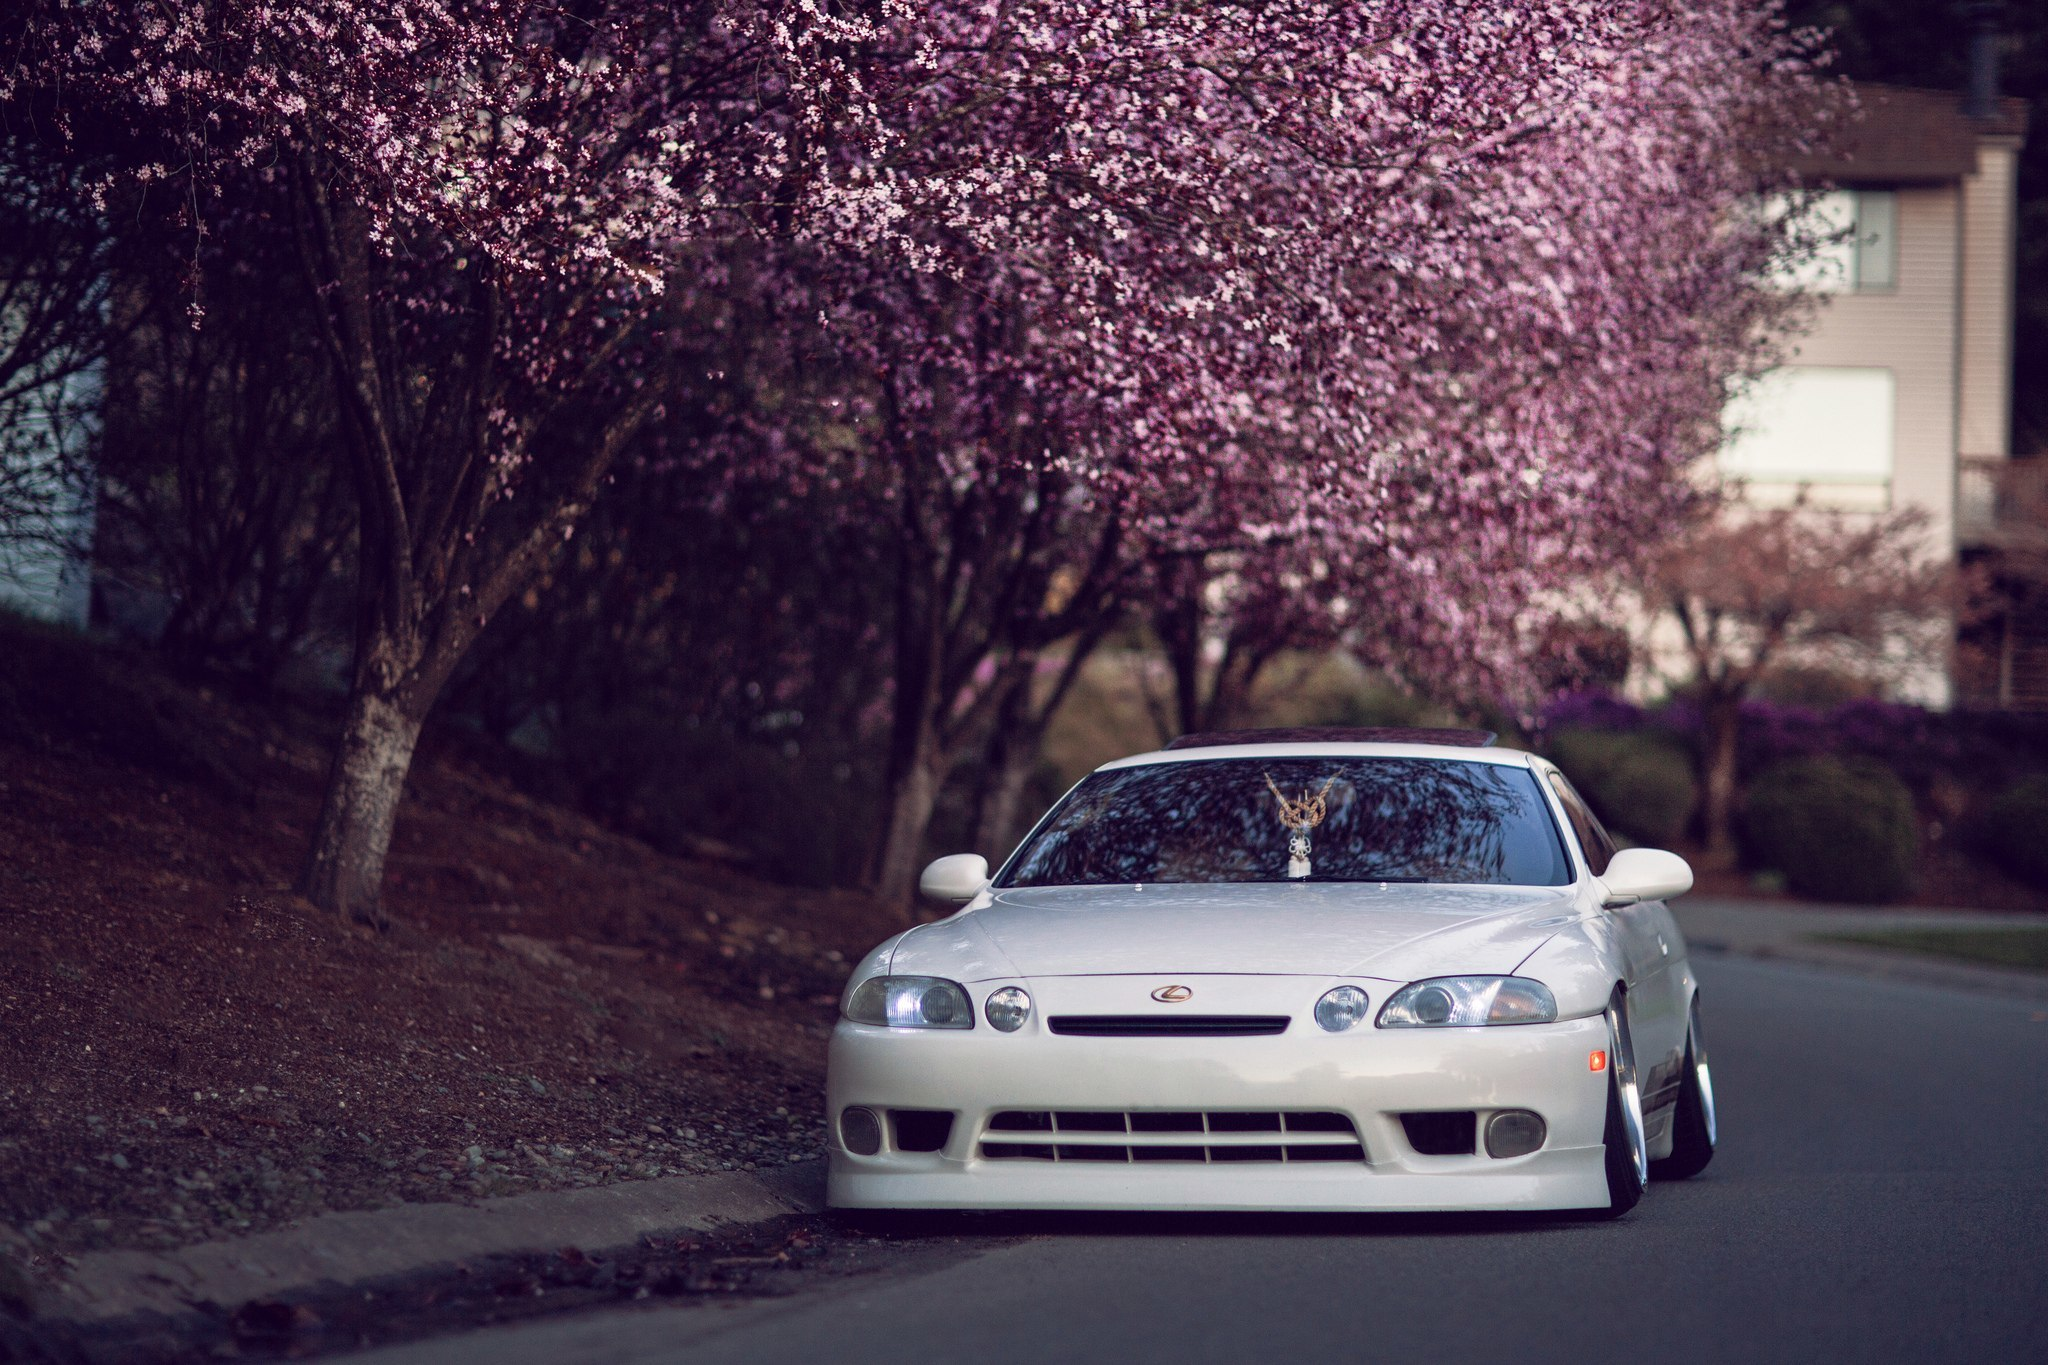 Lexus Full HD Wallpaper And Background Image 2048x1365